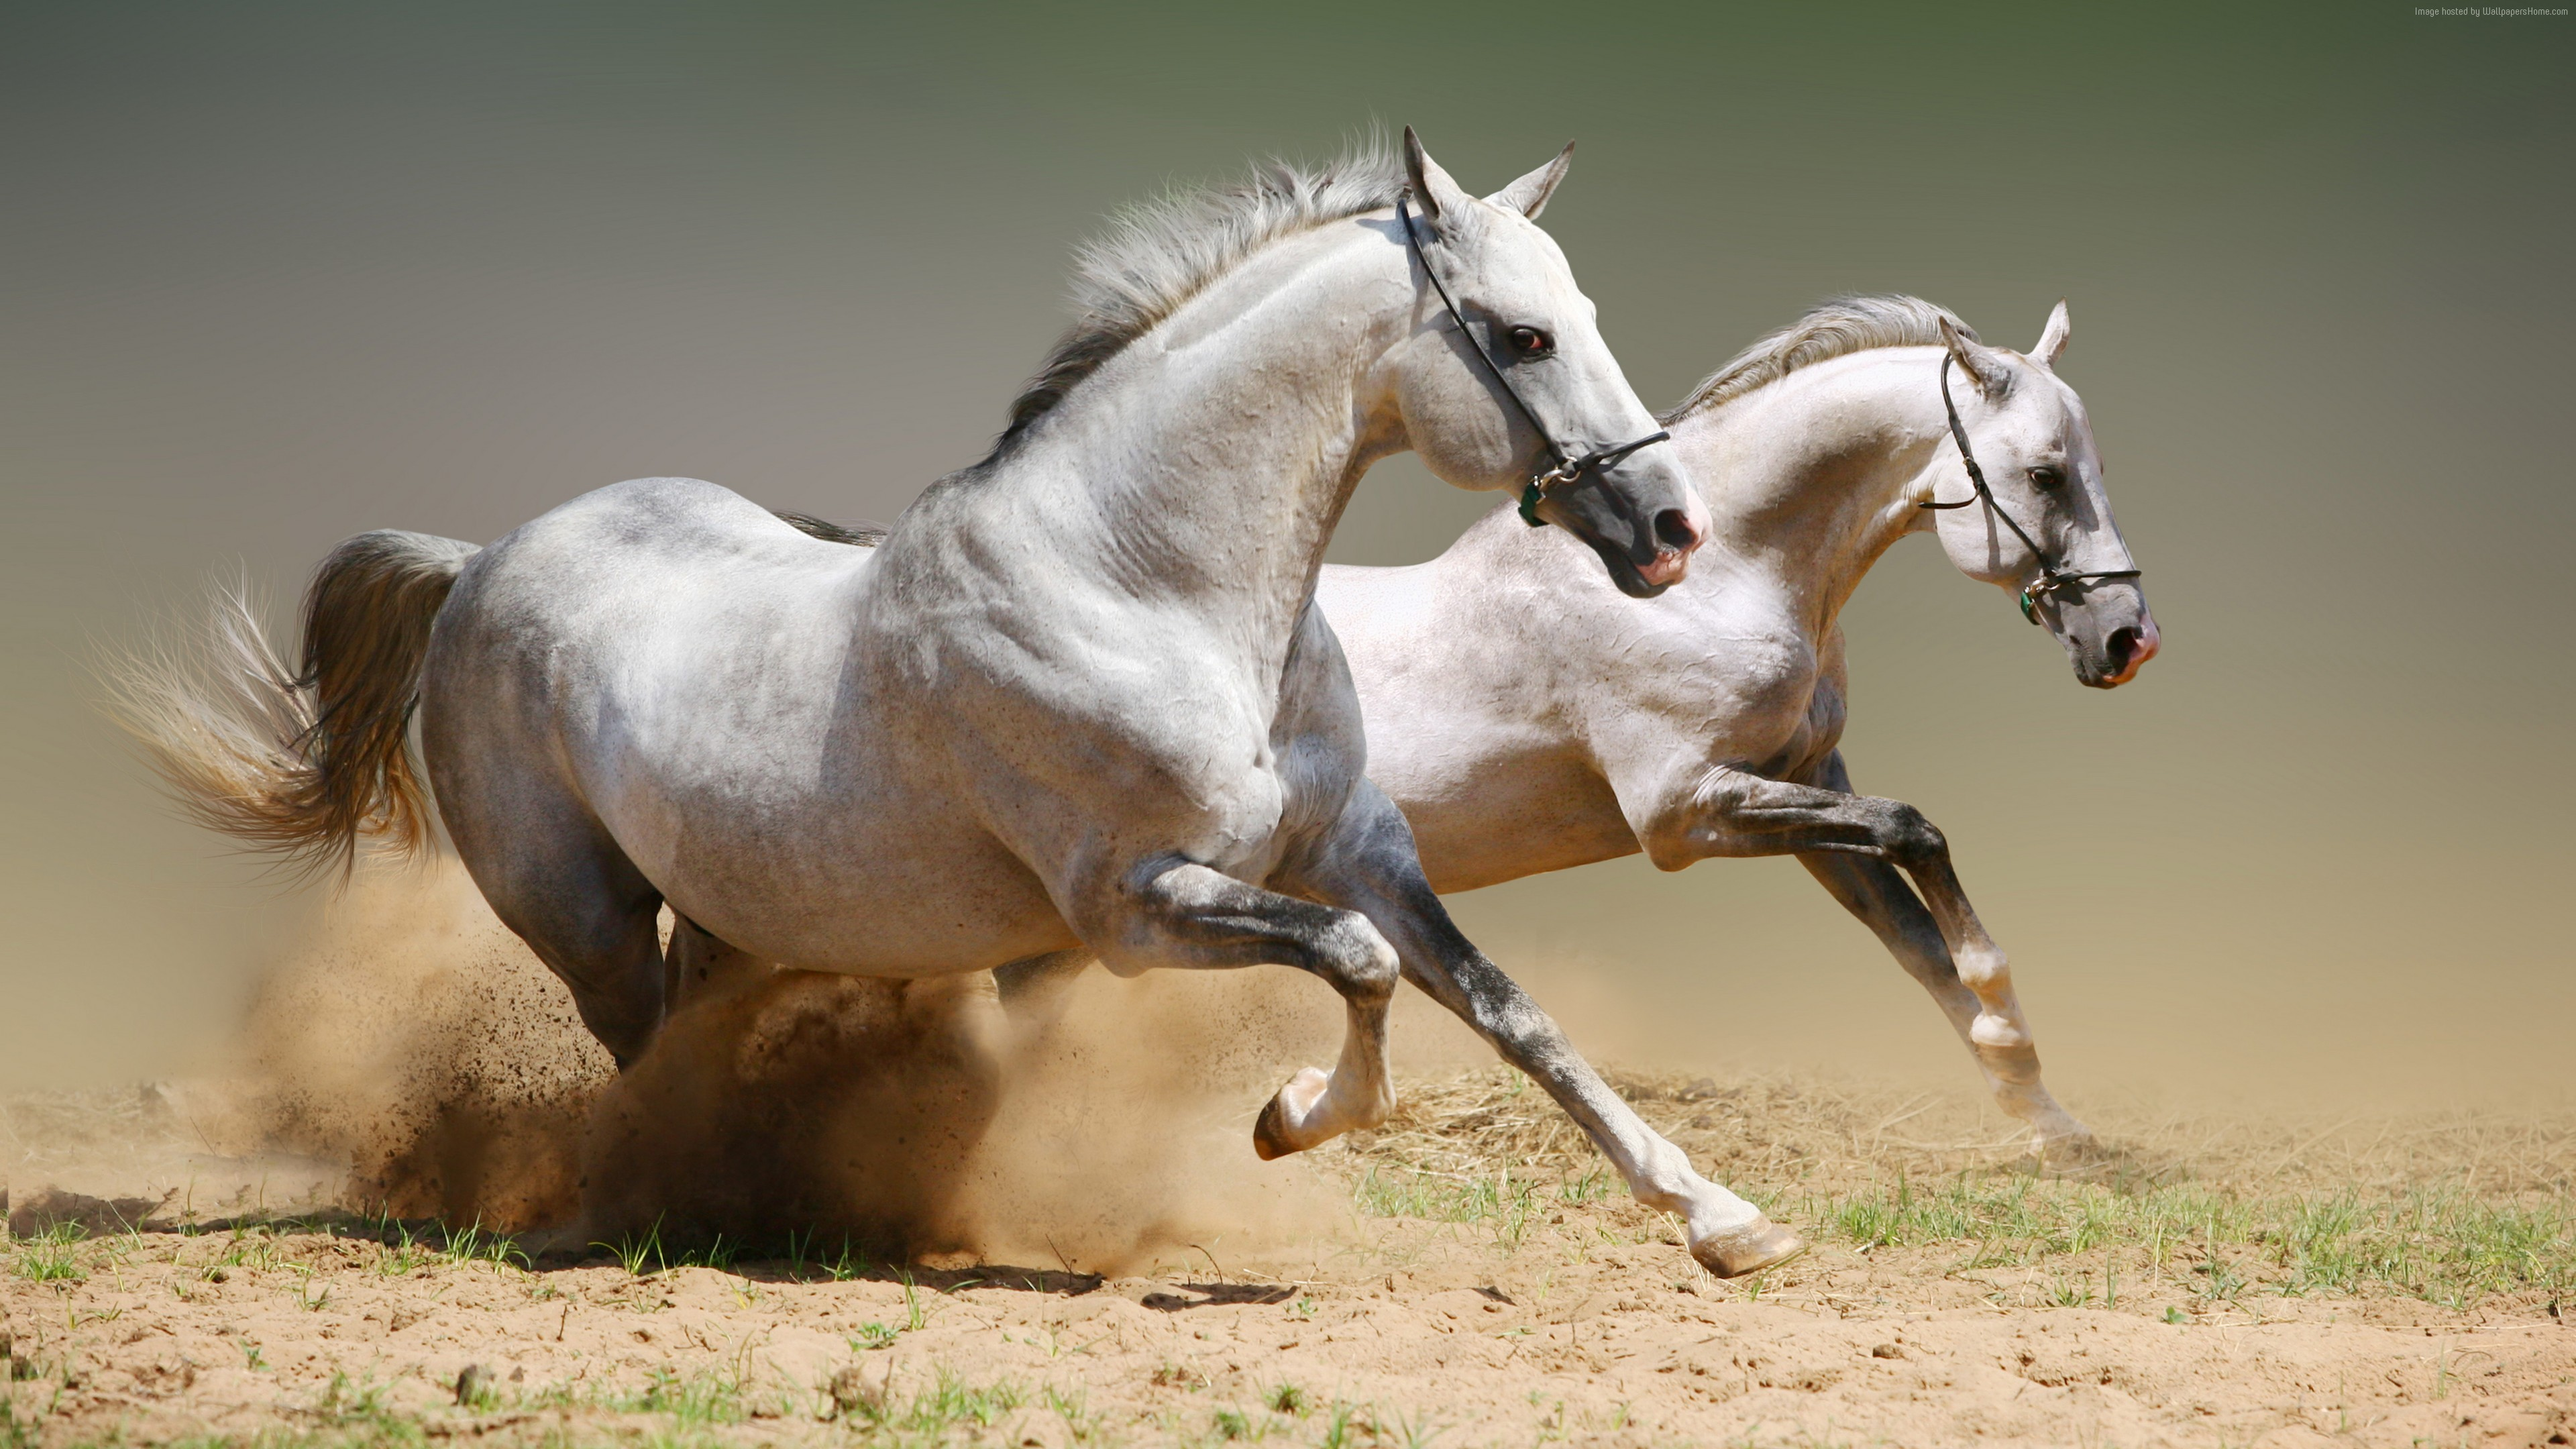 Wallpaper Horse, cute animals, gallop, Animals